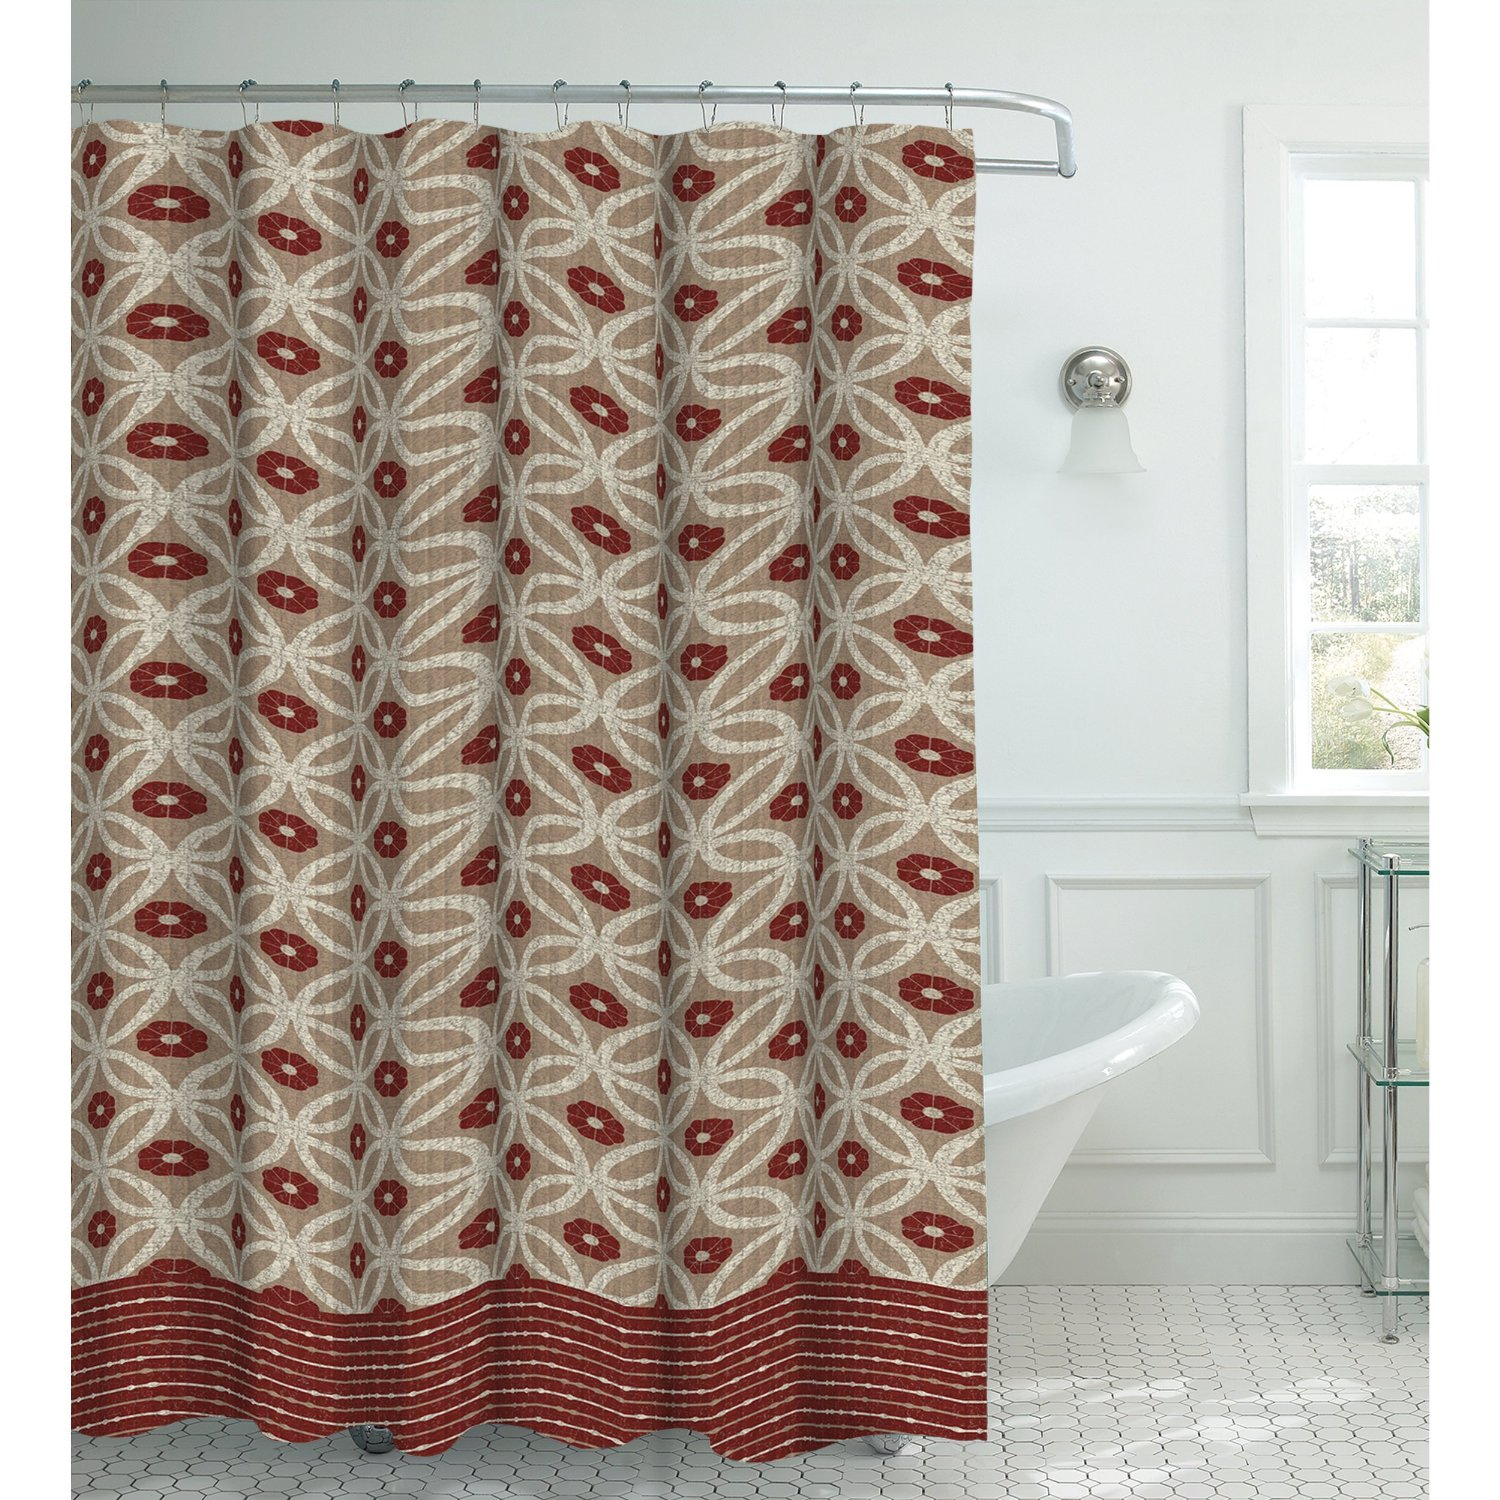 Creative Home Ideas Oxford Weave Textured 13-Piece Shower Curtain with Metal Roller Hooks,